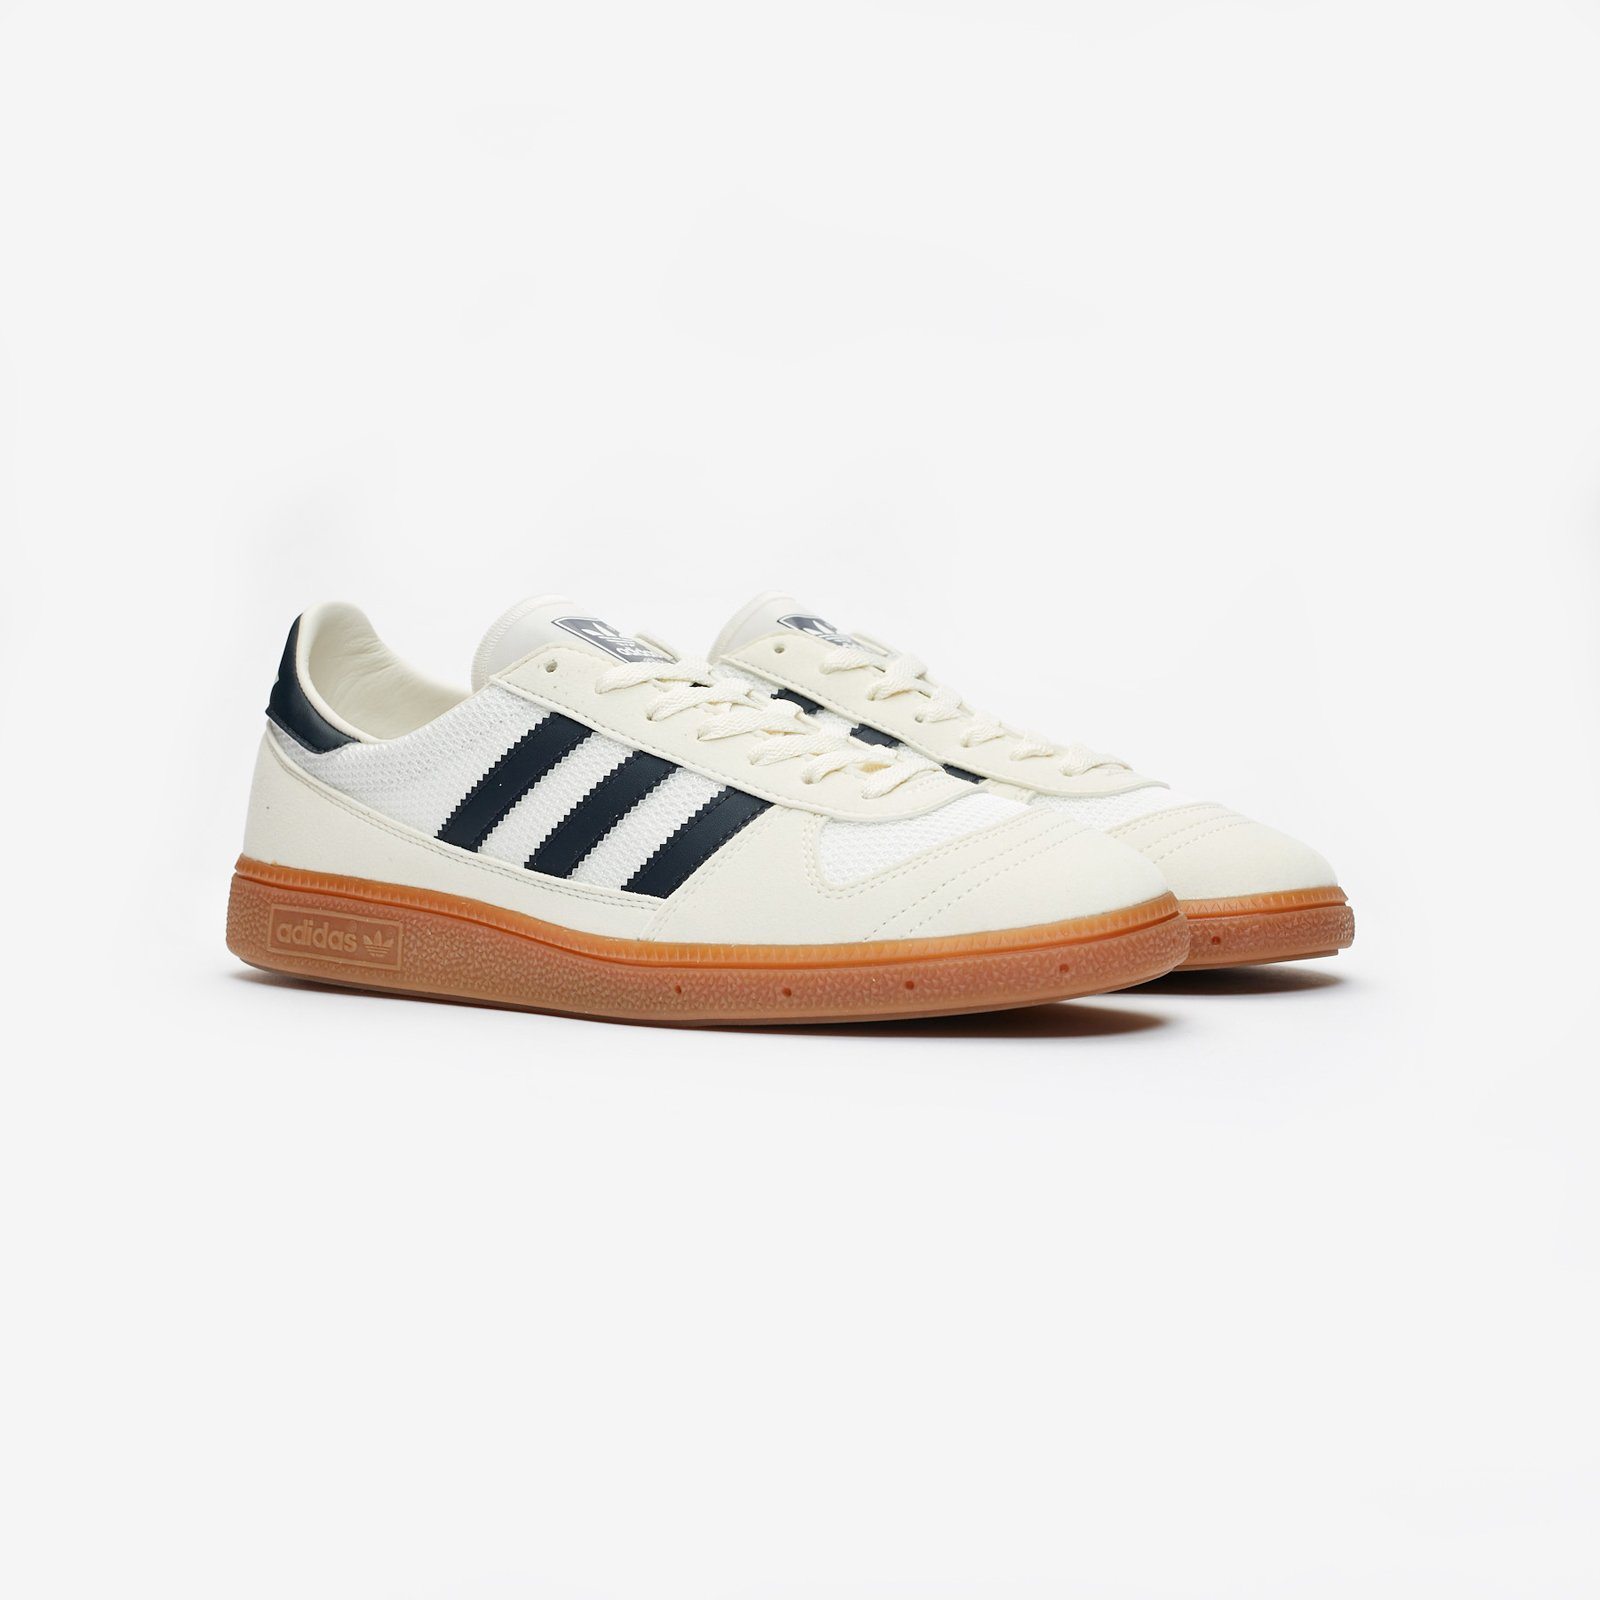 low priced 19dc9 e7586 adidas Originals Spezial Wilsy SPZL